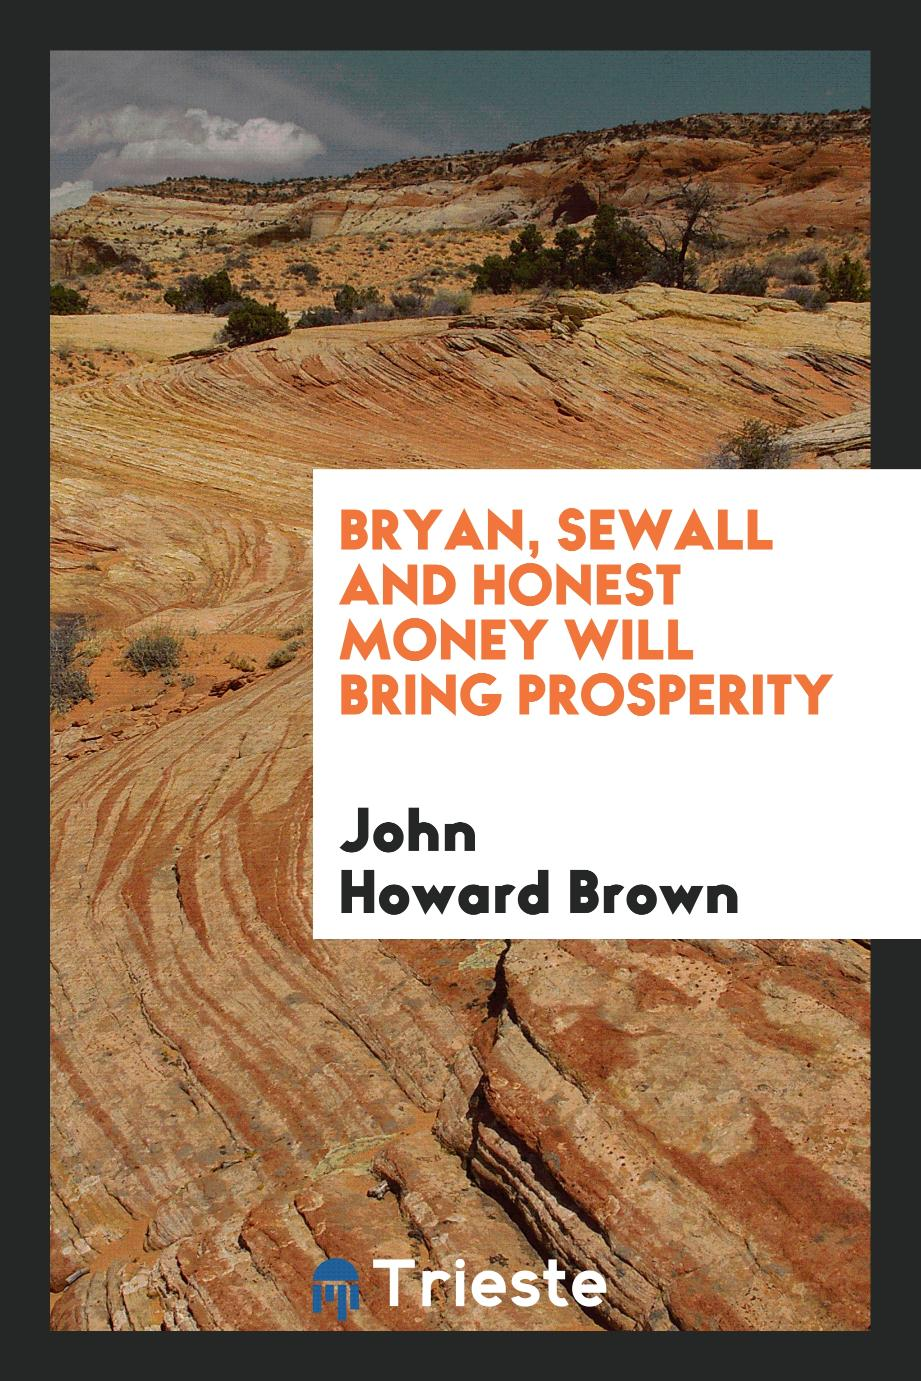 Bryan, Sewall and honest money will bring prosperity